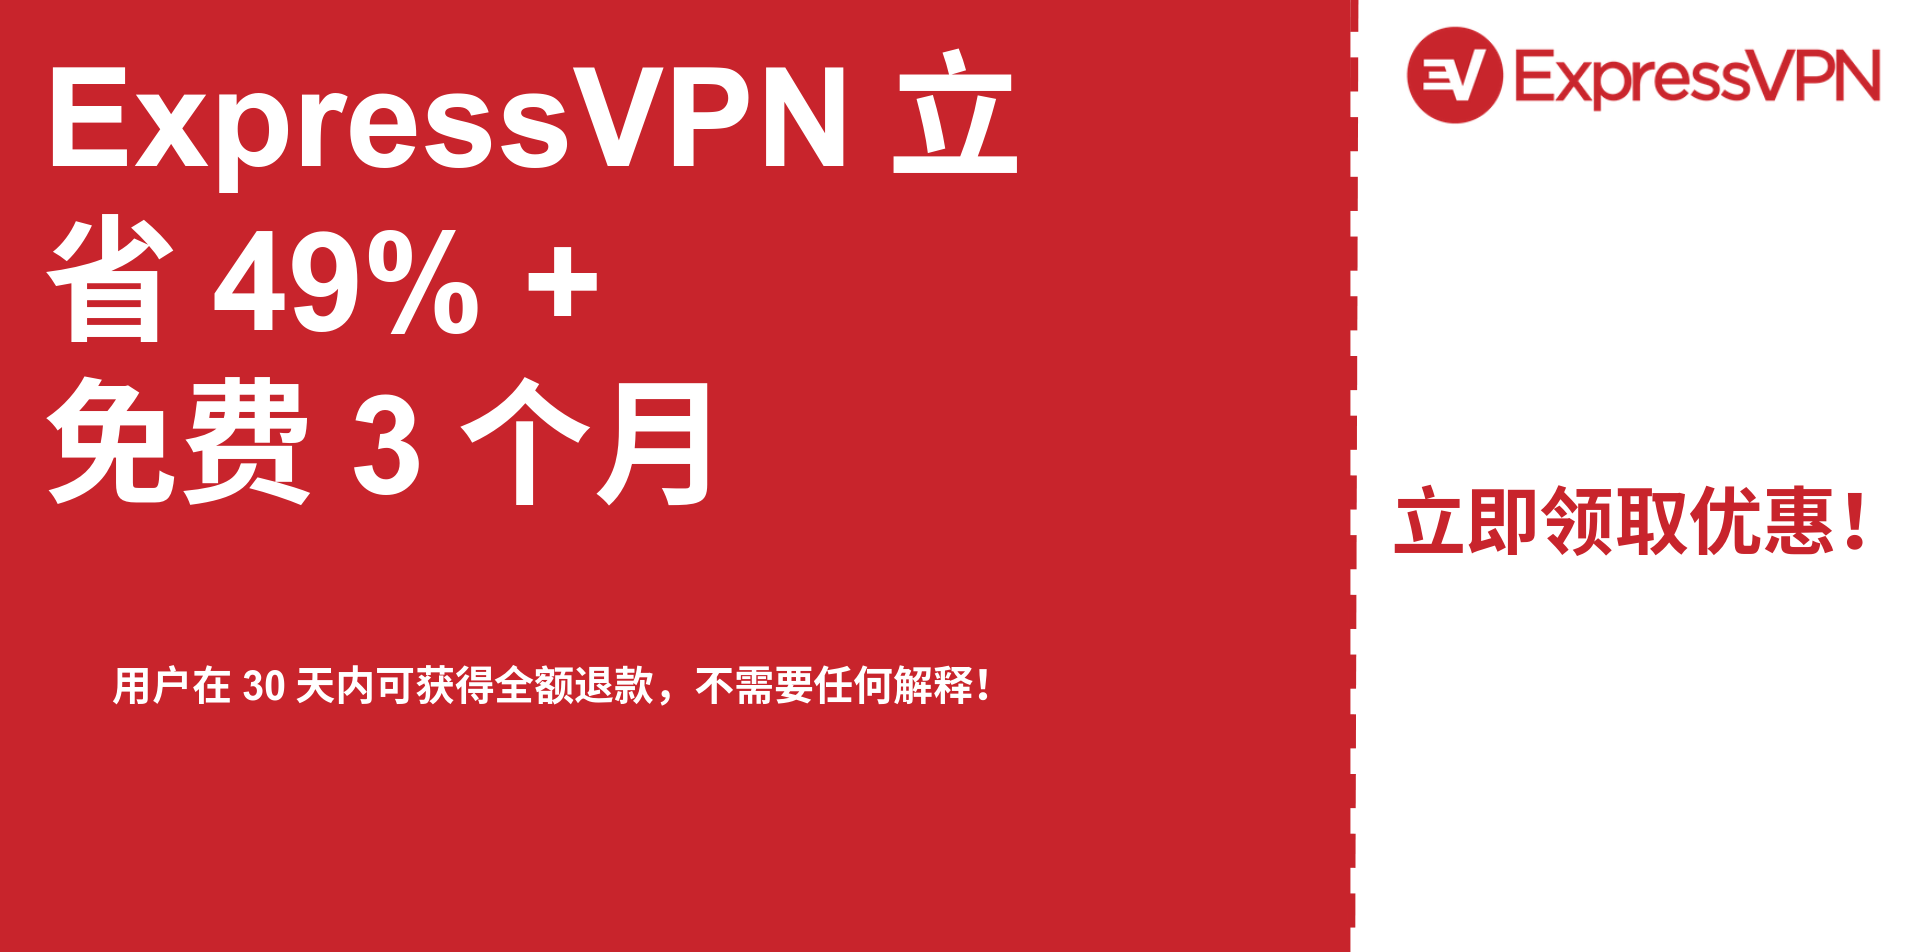 graphic of expressvpn main coupon banner showing 49% off